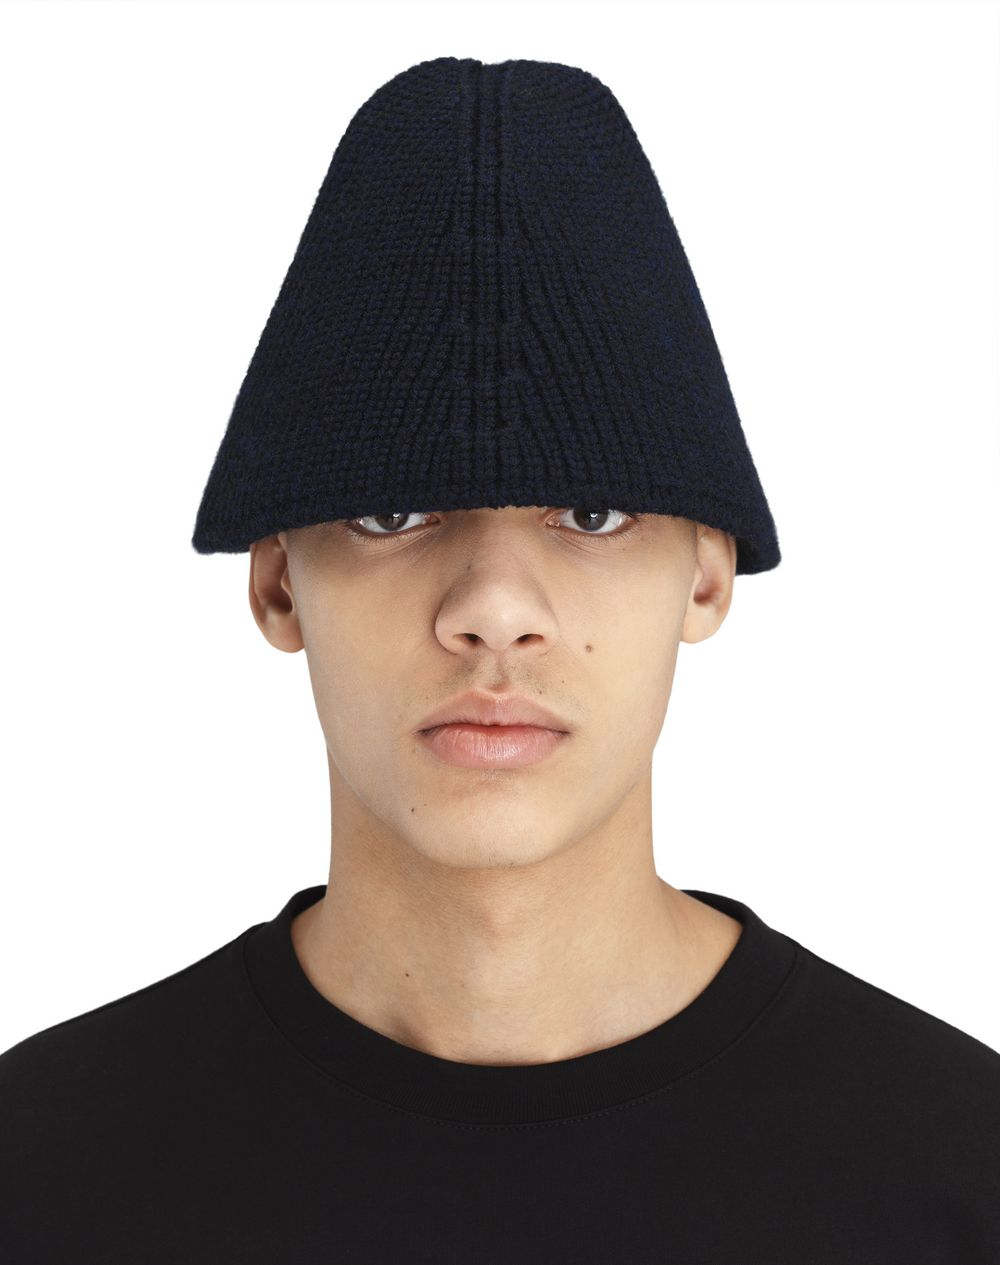 SMALL KNIT BUCKET HAT - Lanvin